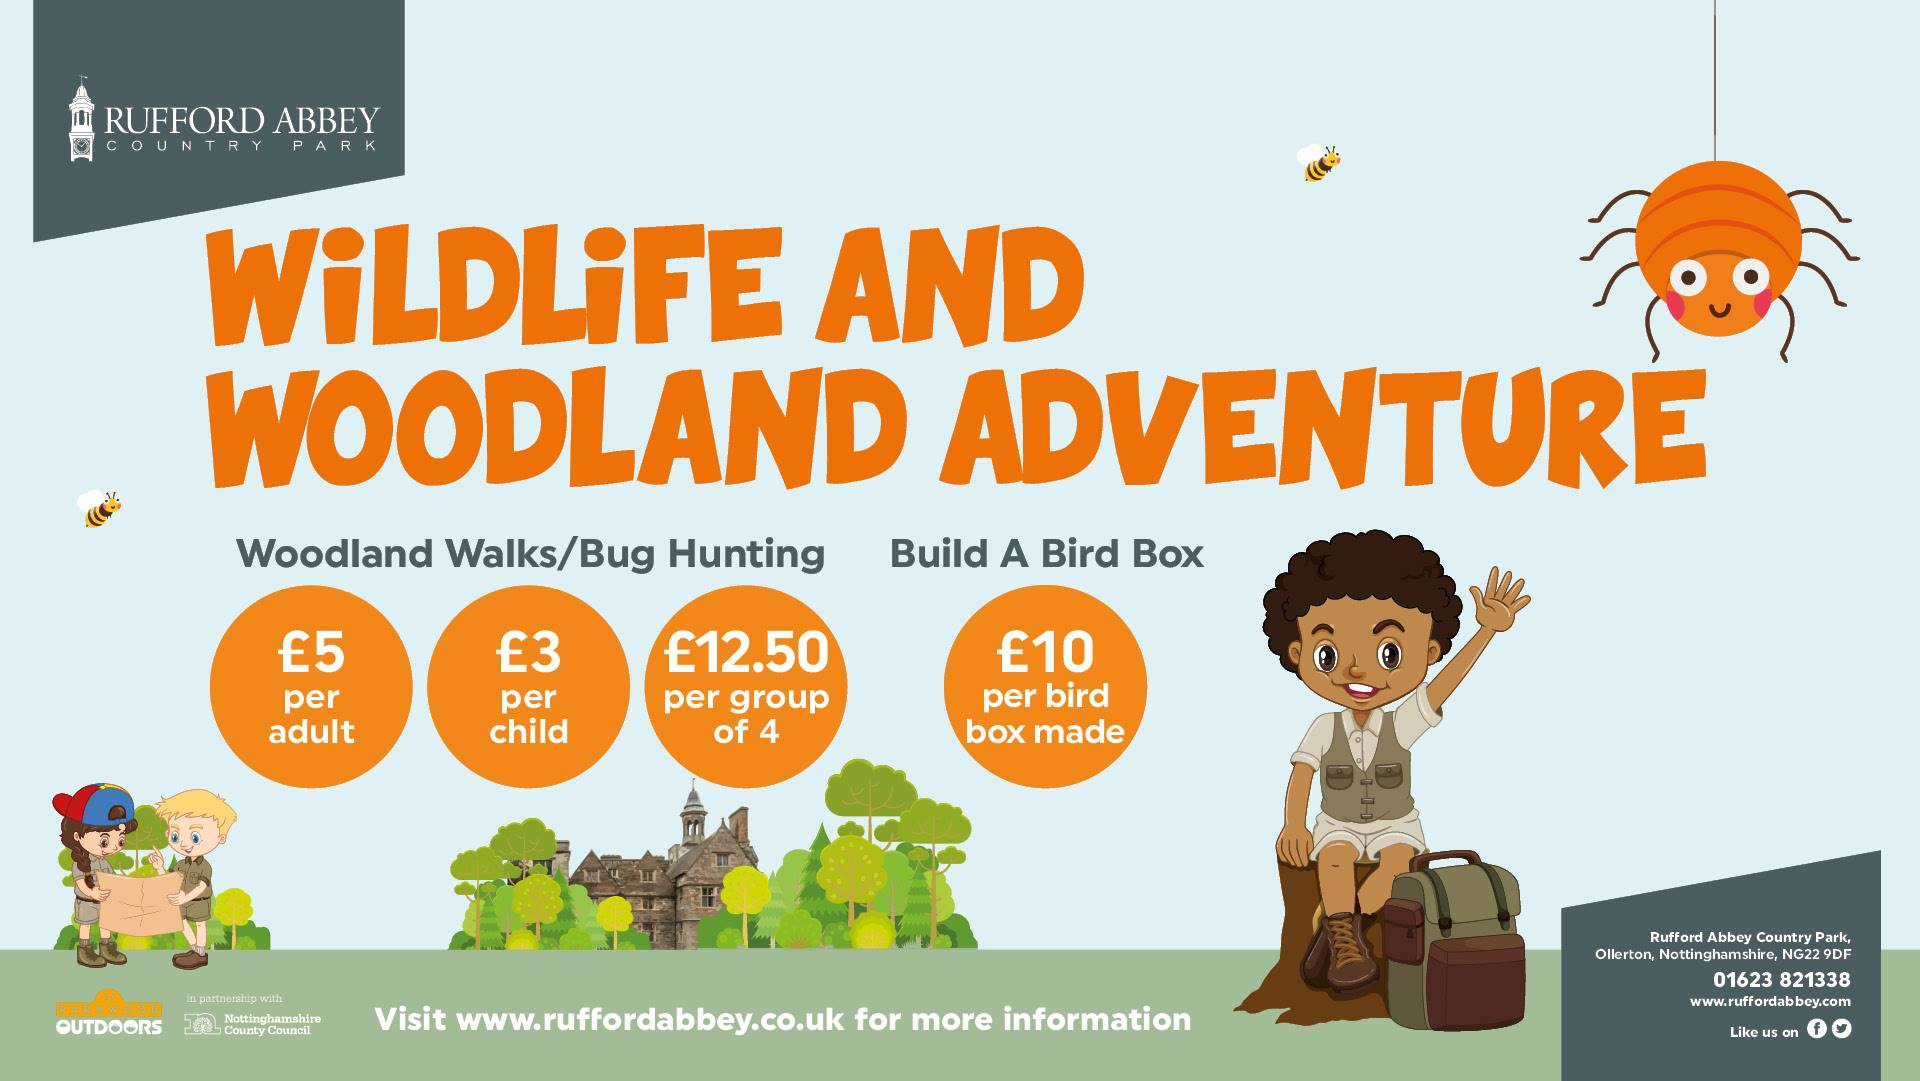 Wildlife and Woodland Adventure event poster at Rufford Abbey